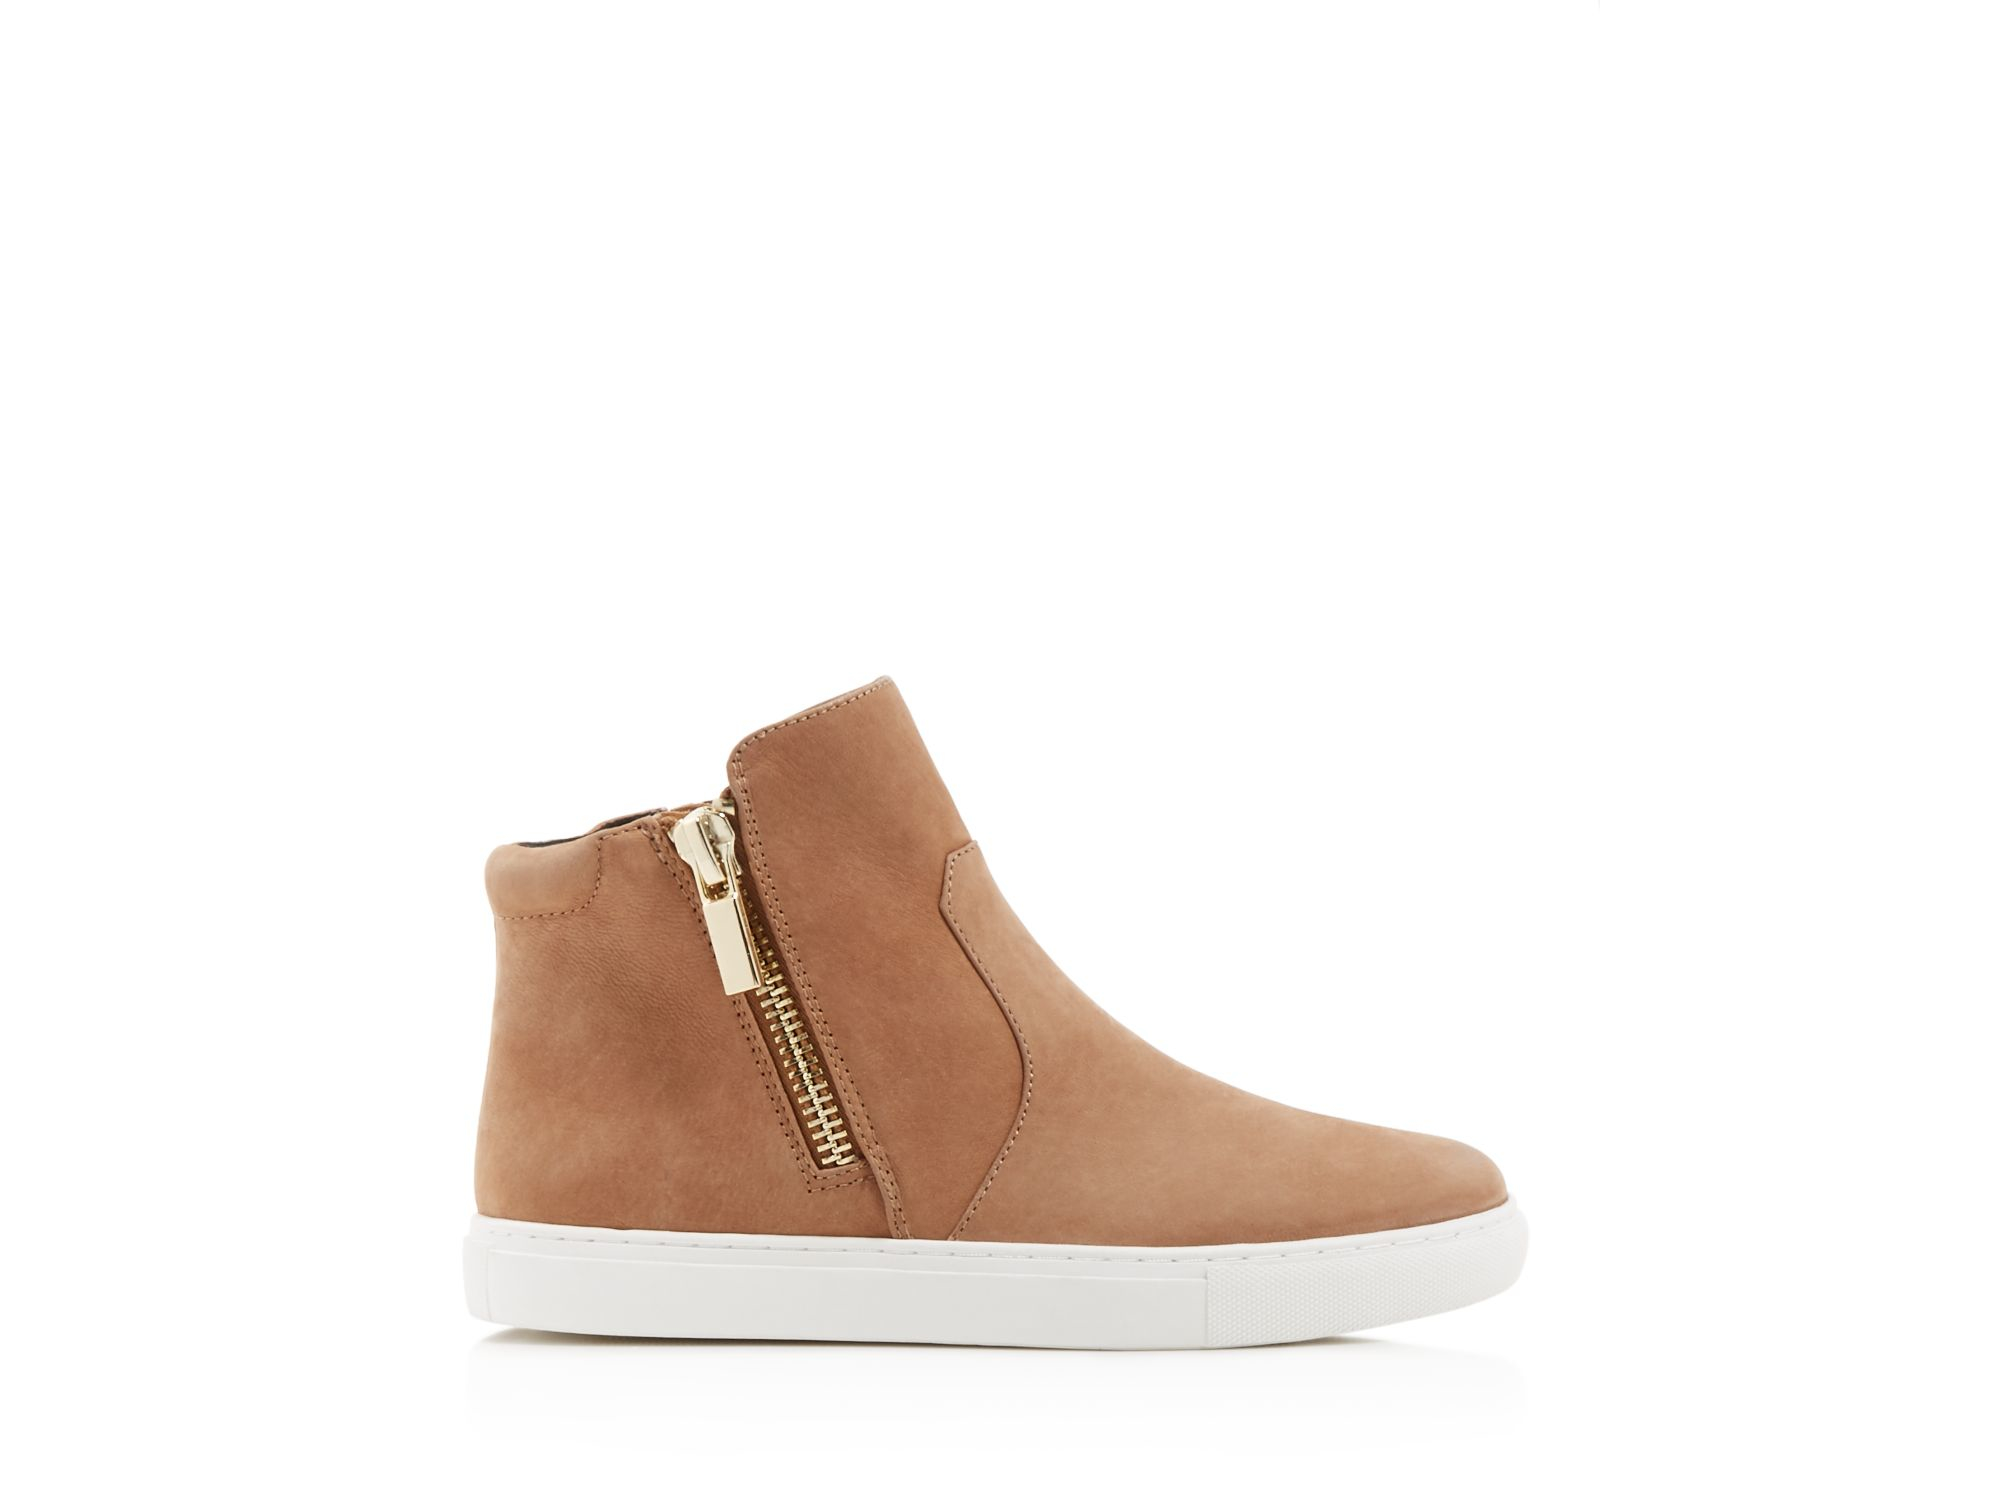 Kenneth Cole Kiera High Top Sneakers in Clay (Brown)